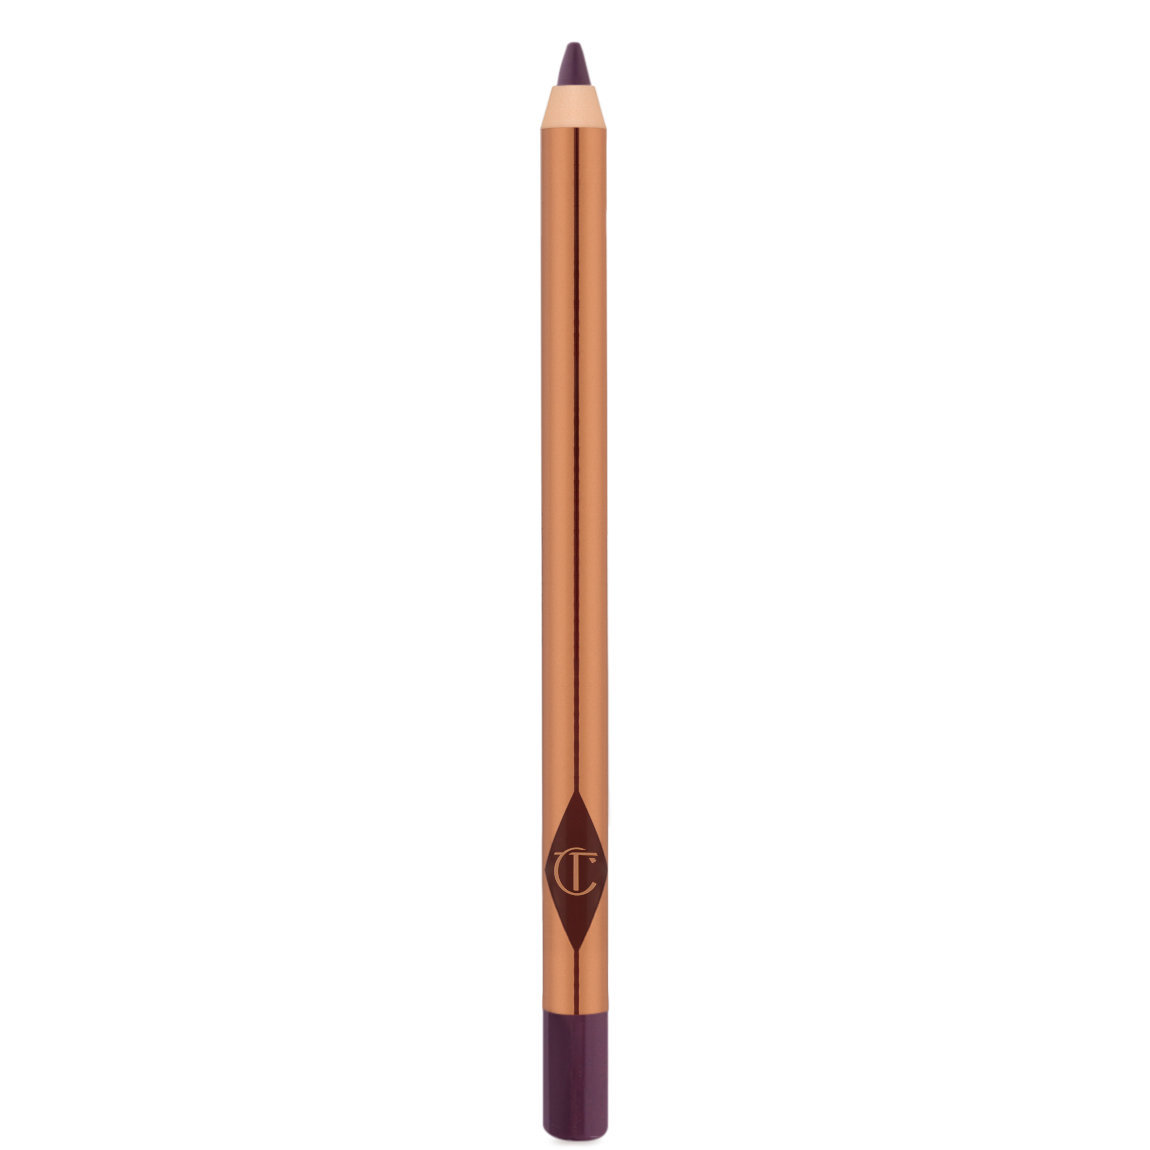 Charlotte Tilbury Lip Cheat Bad Romance alternative view 1.